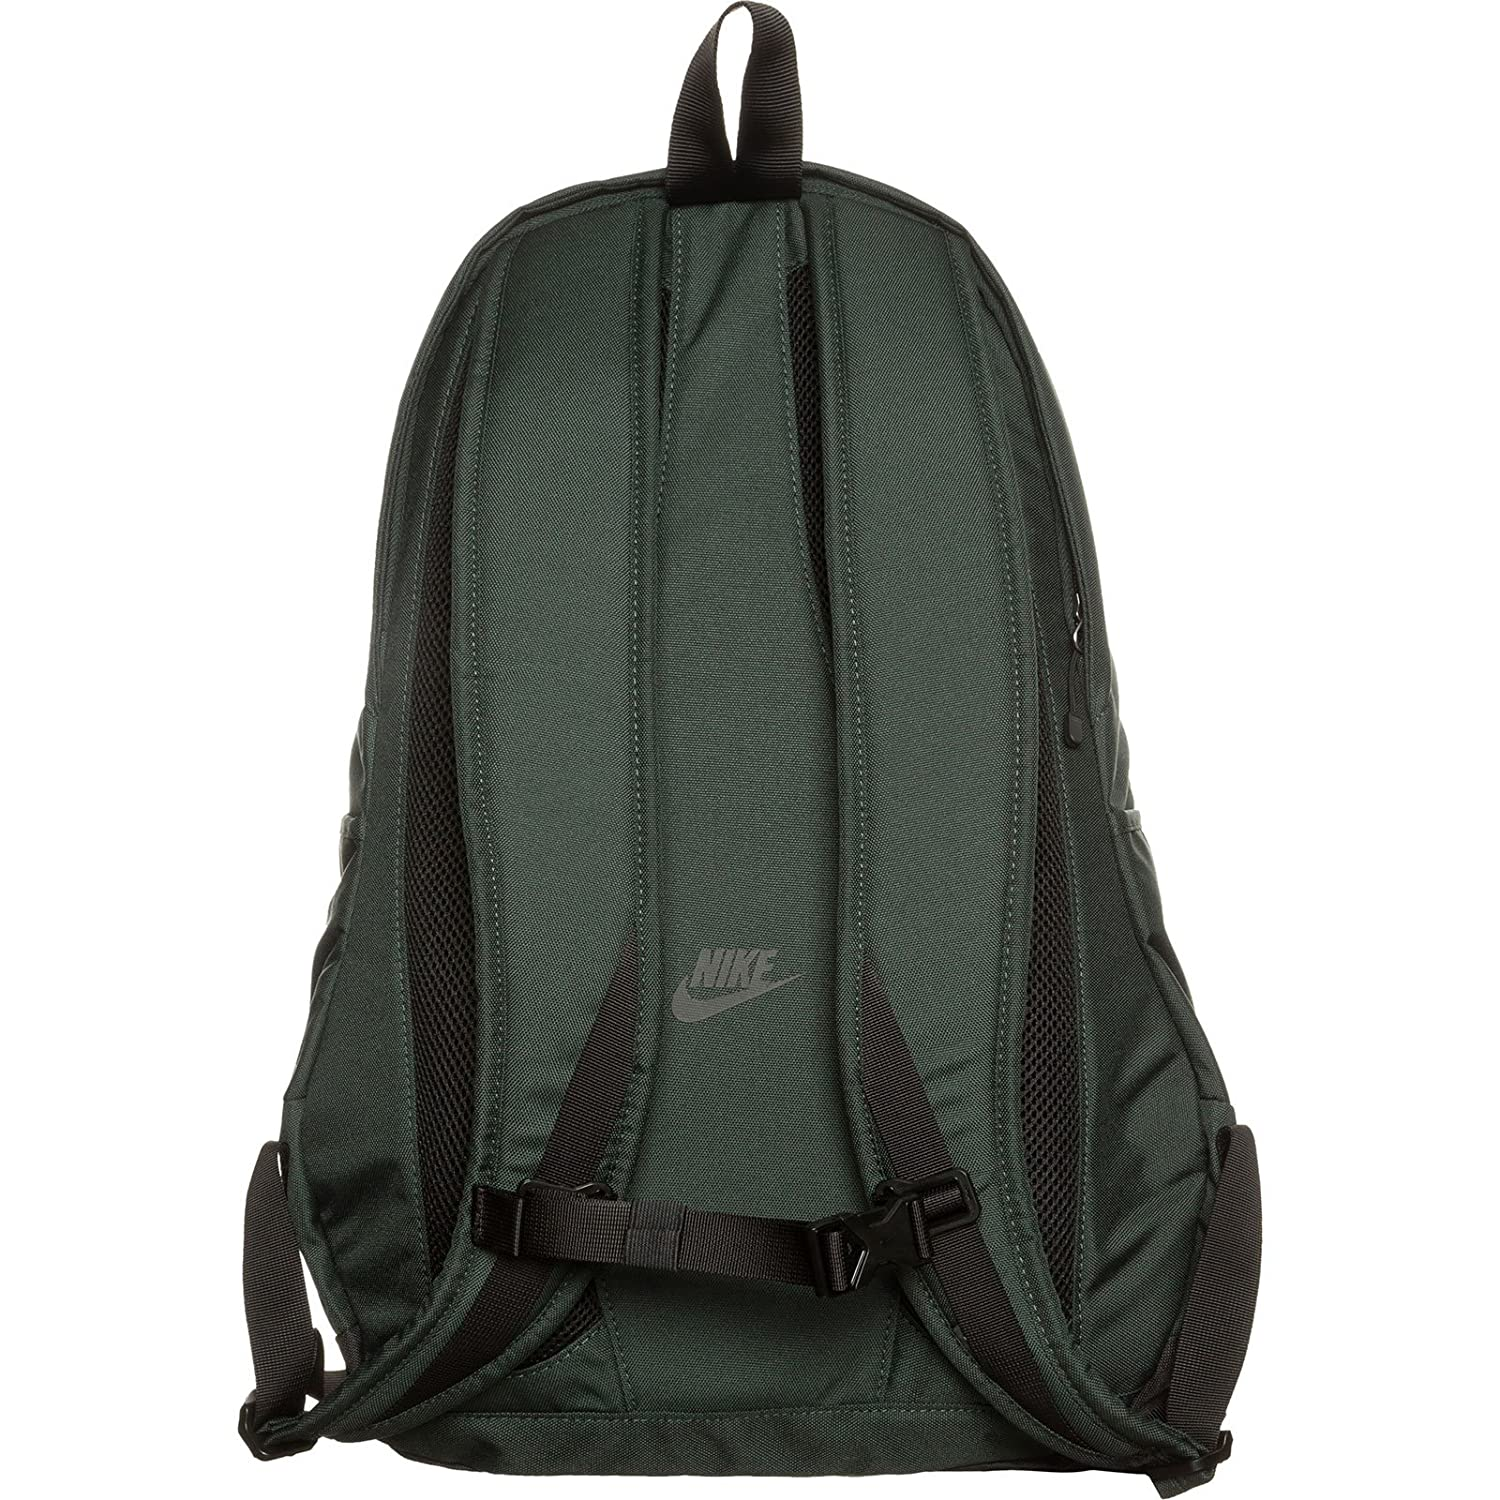 d73632651222 Nike Cheyenne Green Laptop Backpack - Buy Nike Cheyenne Green Laptop  Backpack Online at Low Price in India - Amazon.in